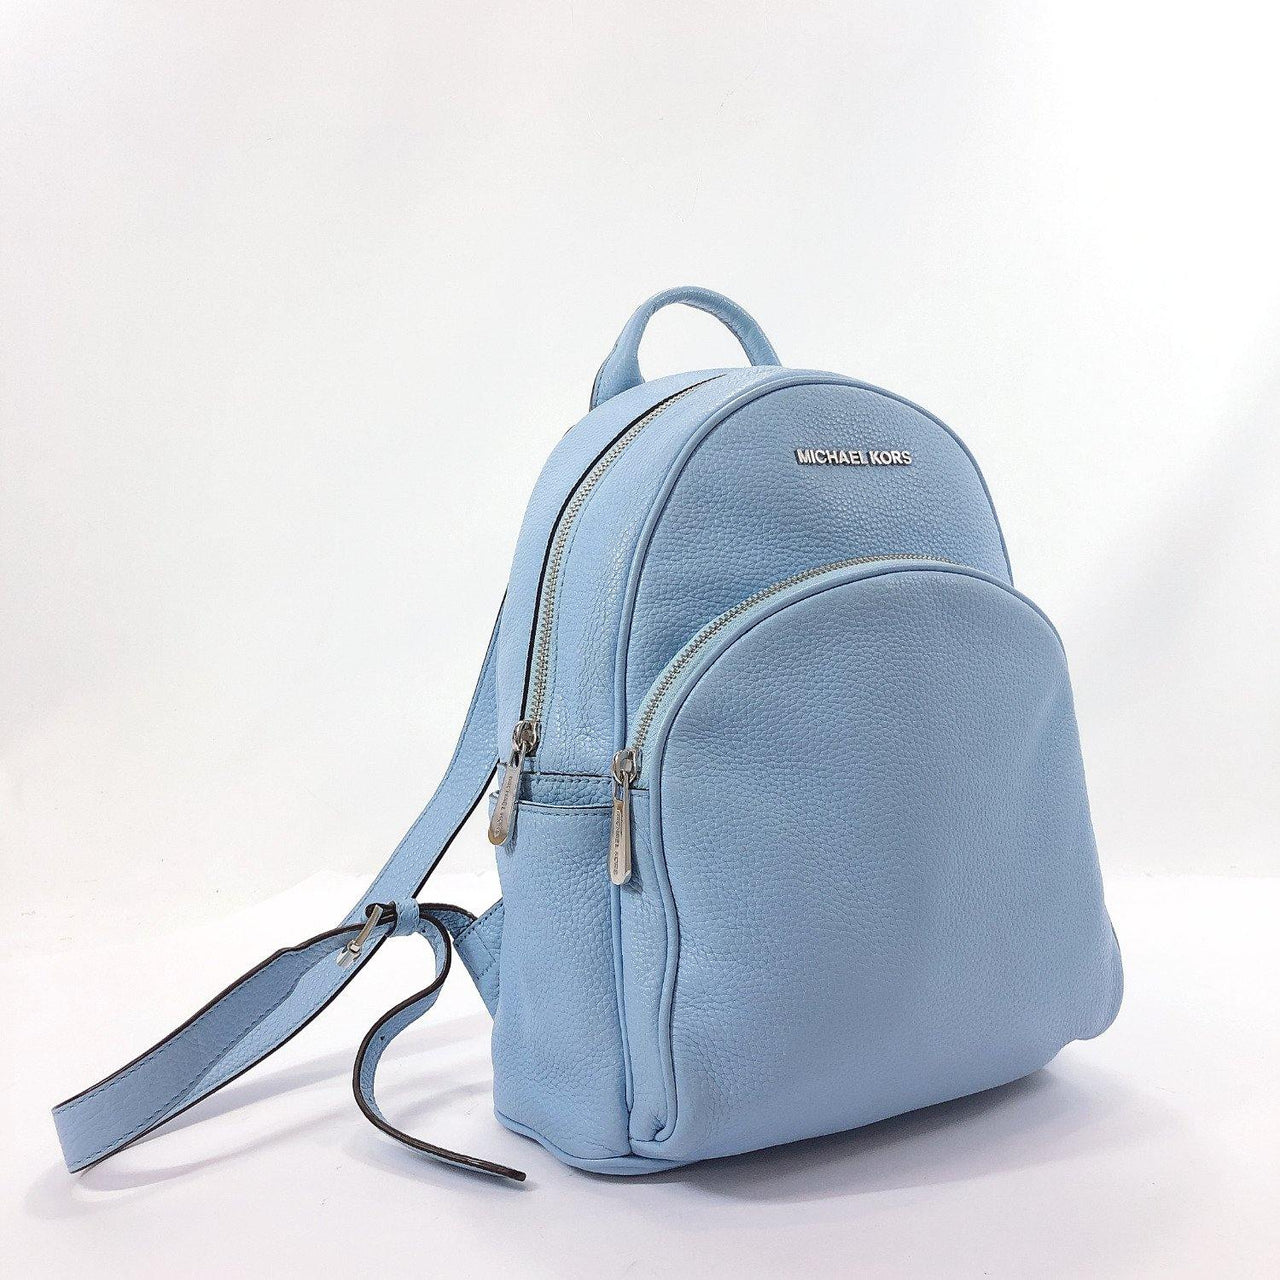 Michael Kors Backpack Daypack 35S7SAYB1L Abbey leather blue Women Used - JP-BRANDS.com